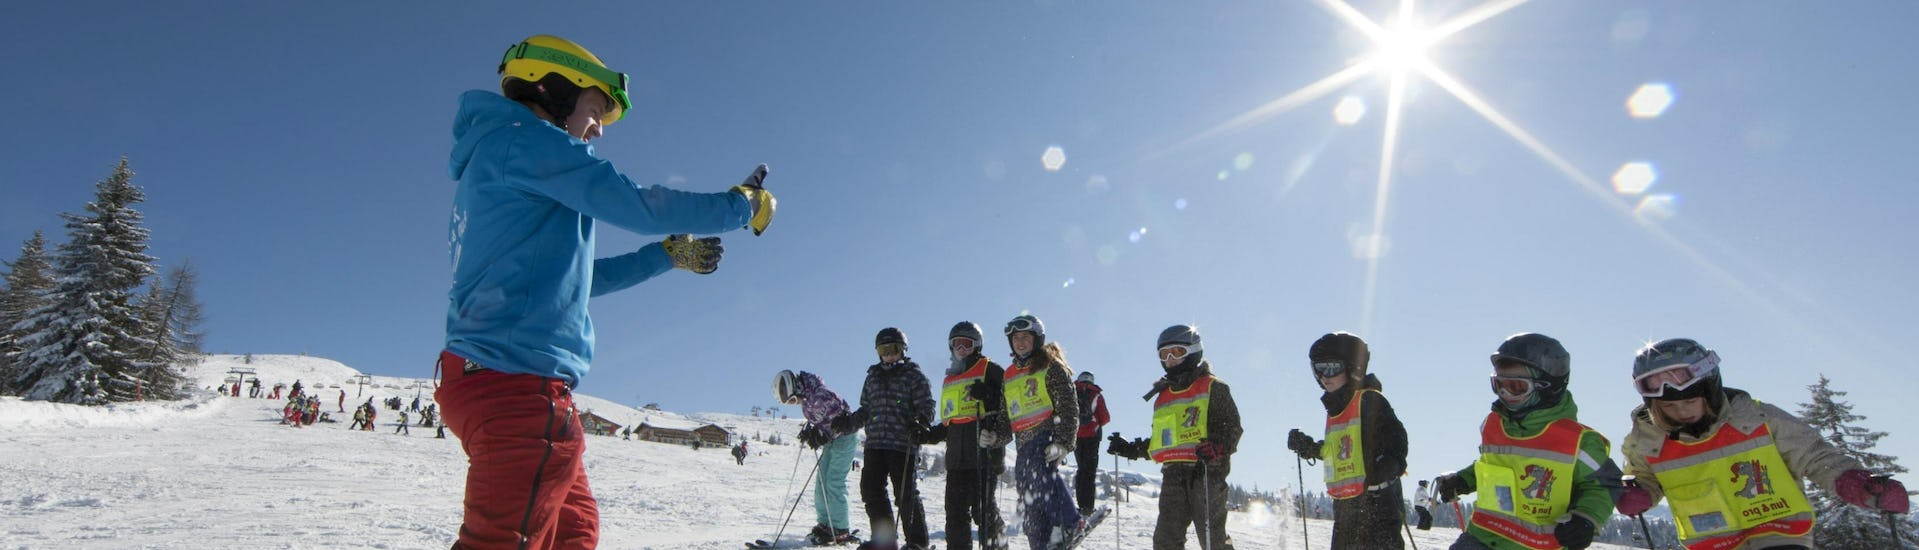 A ski instructor is holding one of the many group ski lessons in the ski resort of St. Johann-Alpendorf.